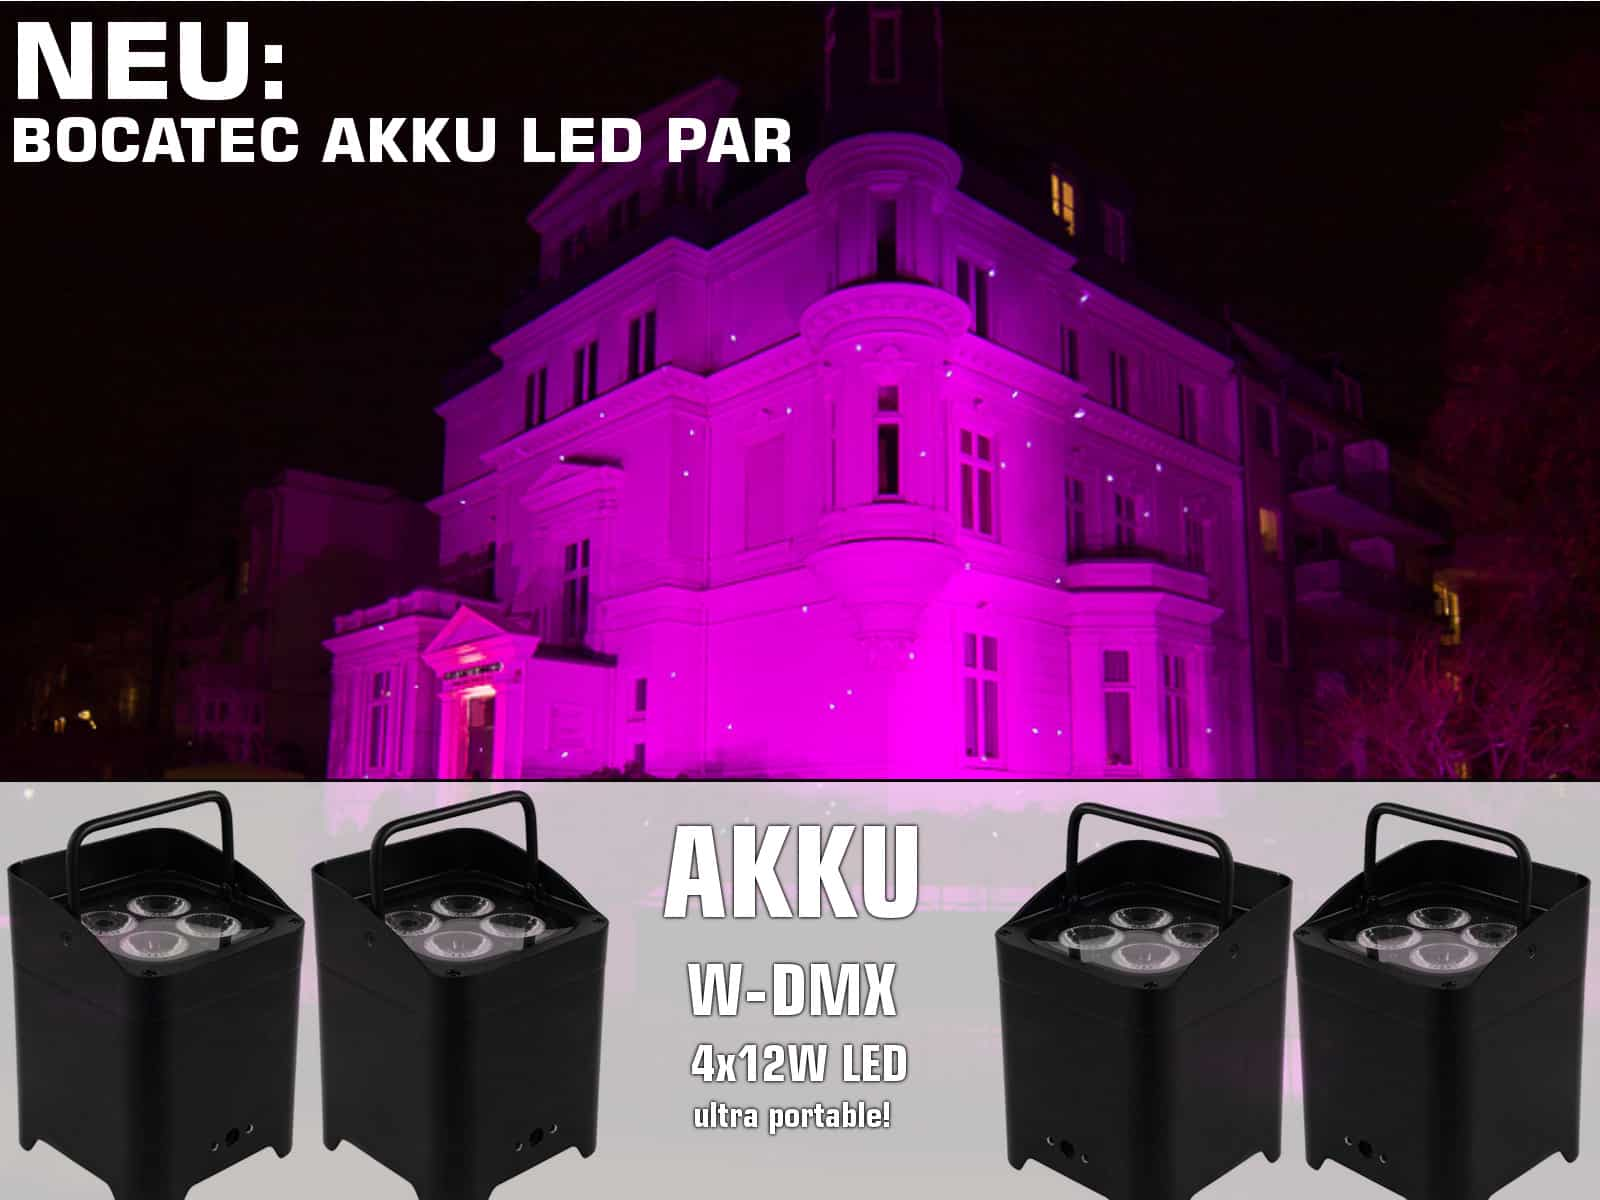 Akku Led, Bocatec